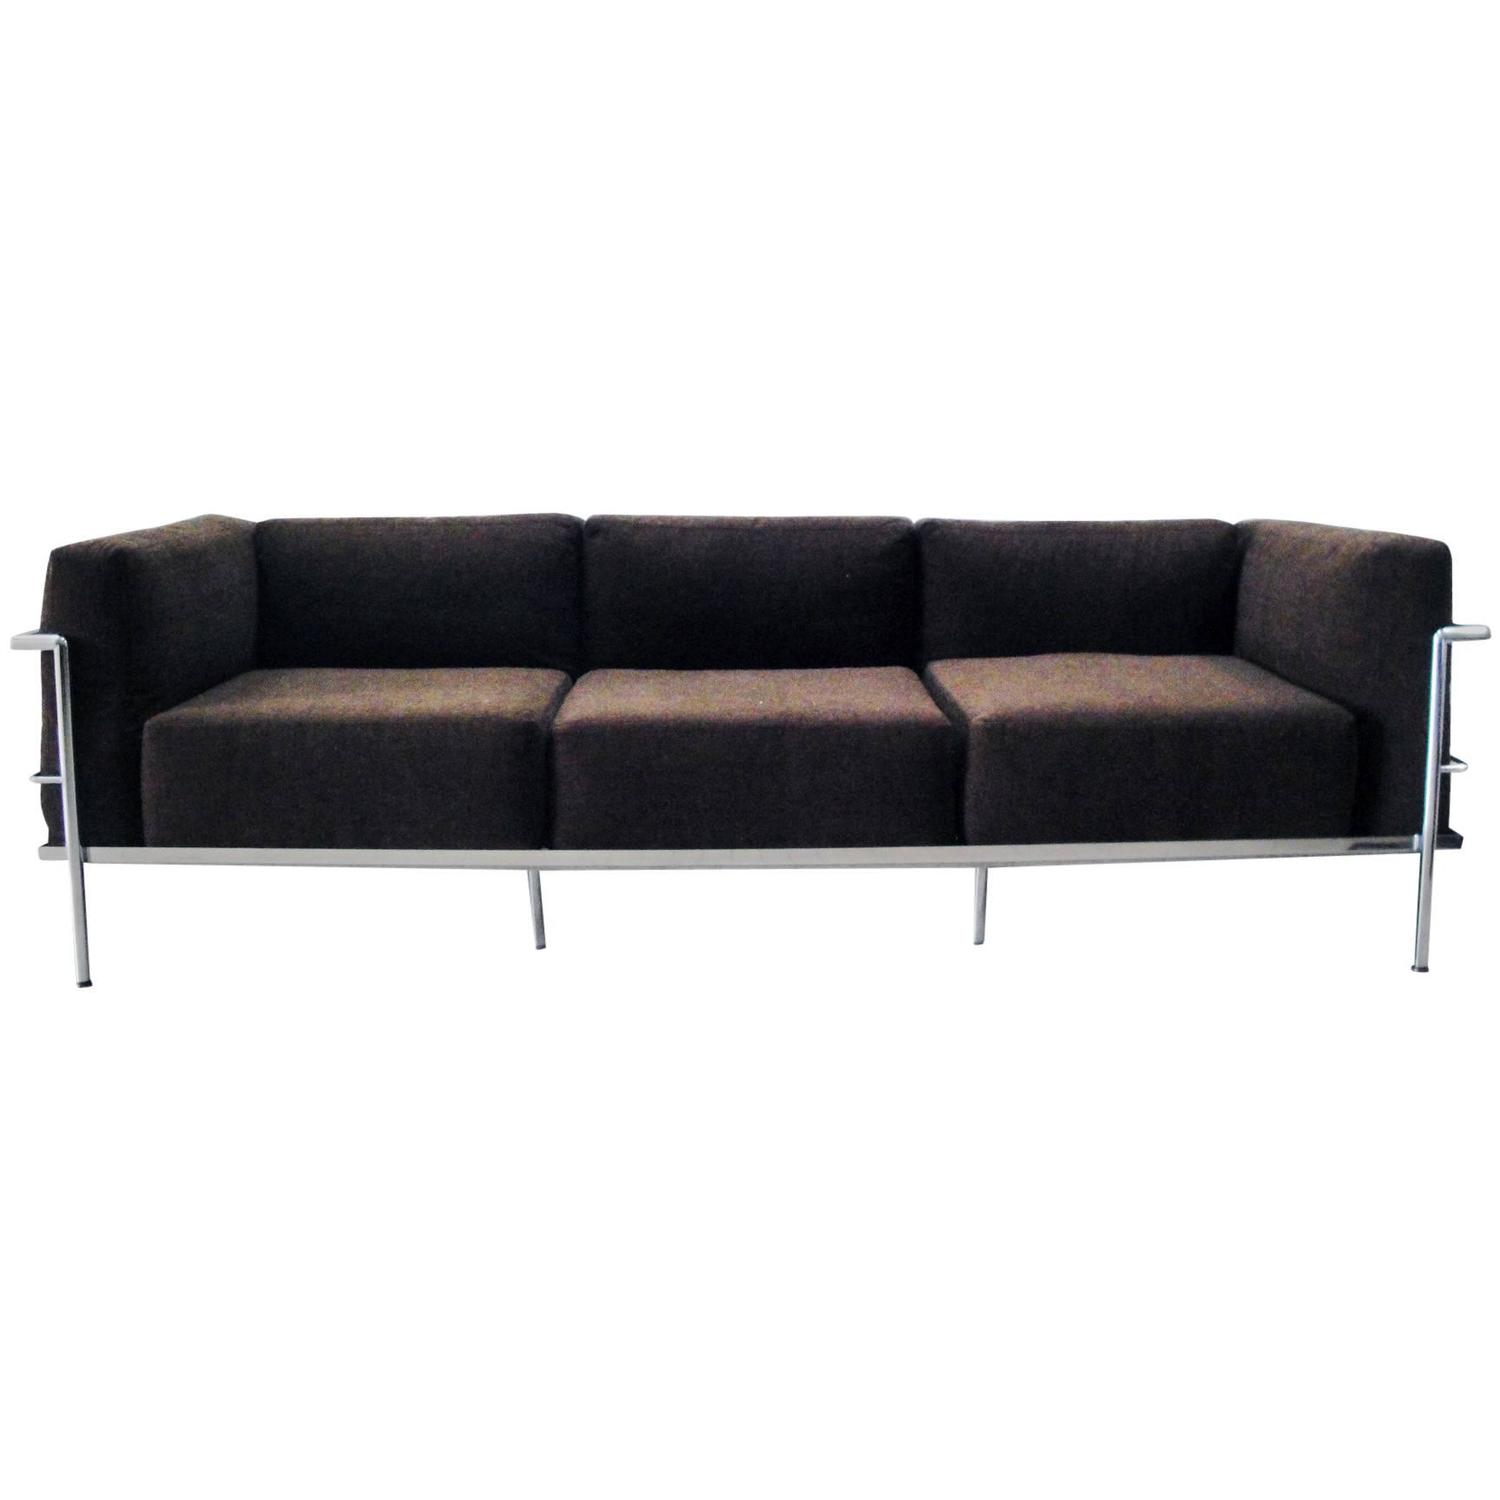 Le corbusier lc3 grand confort sofa at 1stdibs for Sofas gran confort